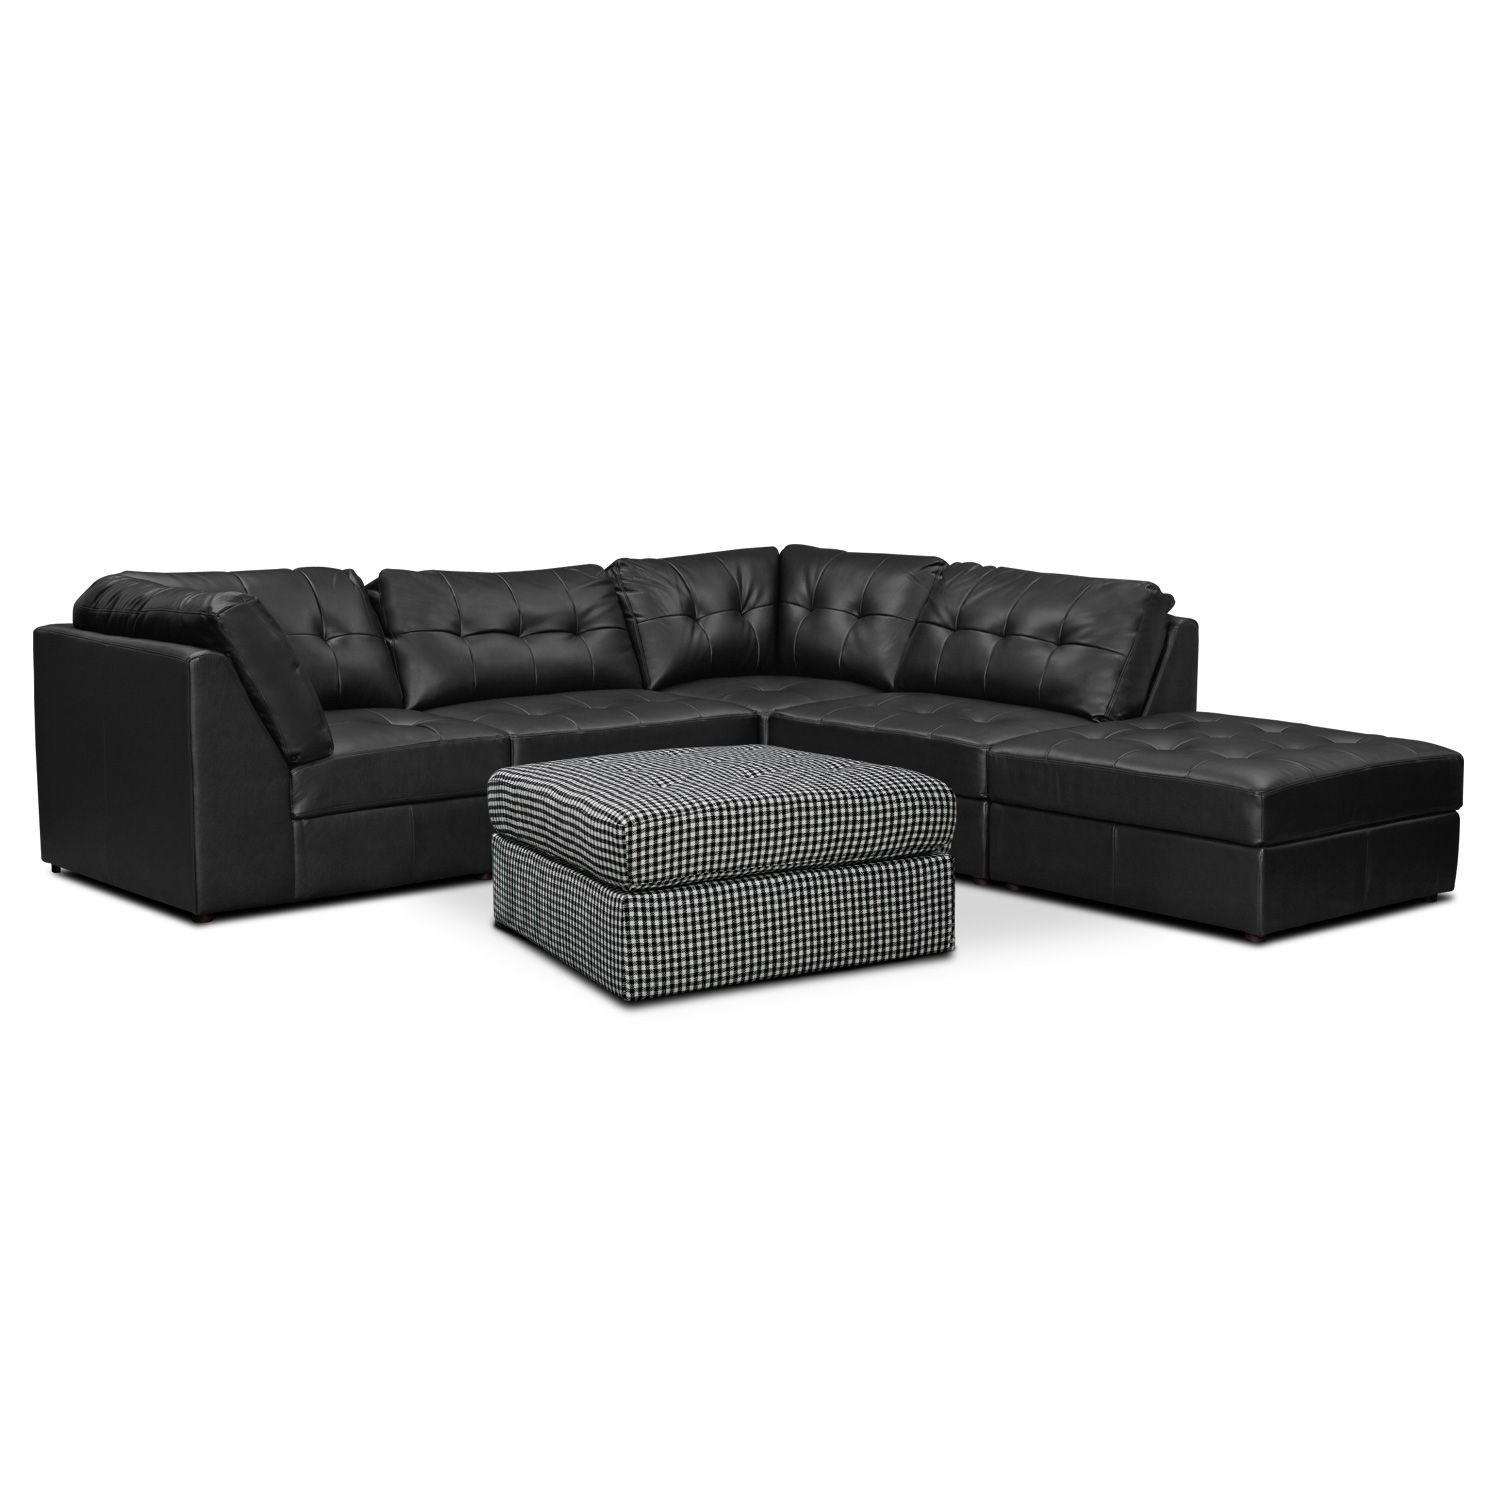 Aventura 6 Pc. Sectional | Value City Furniture